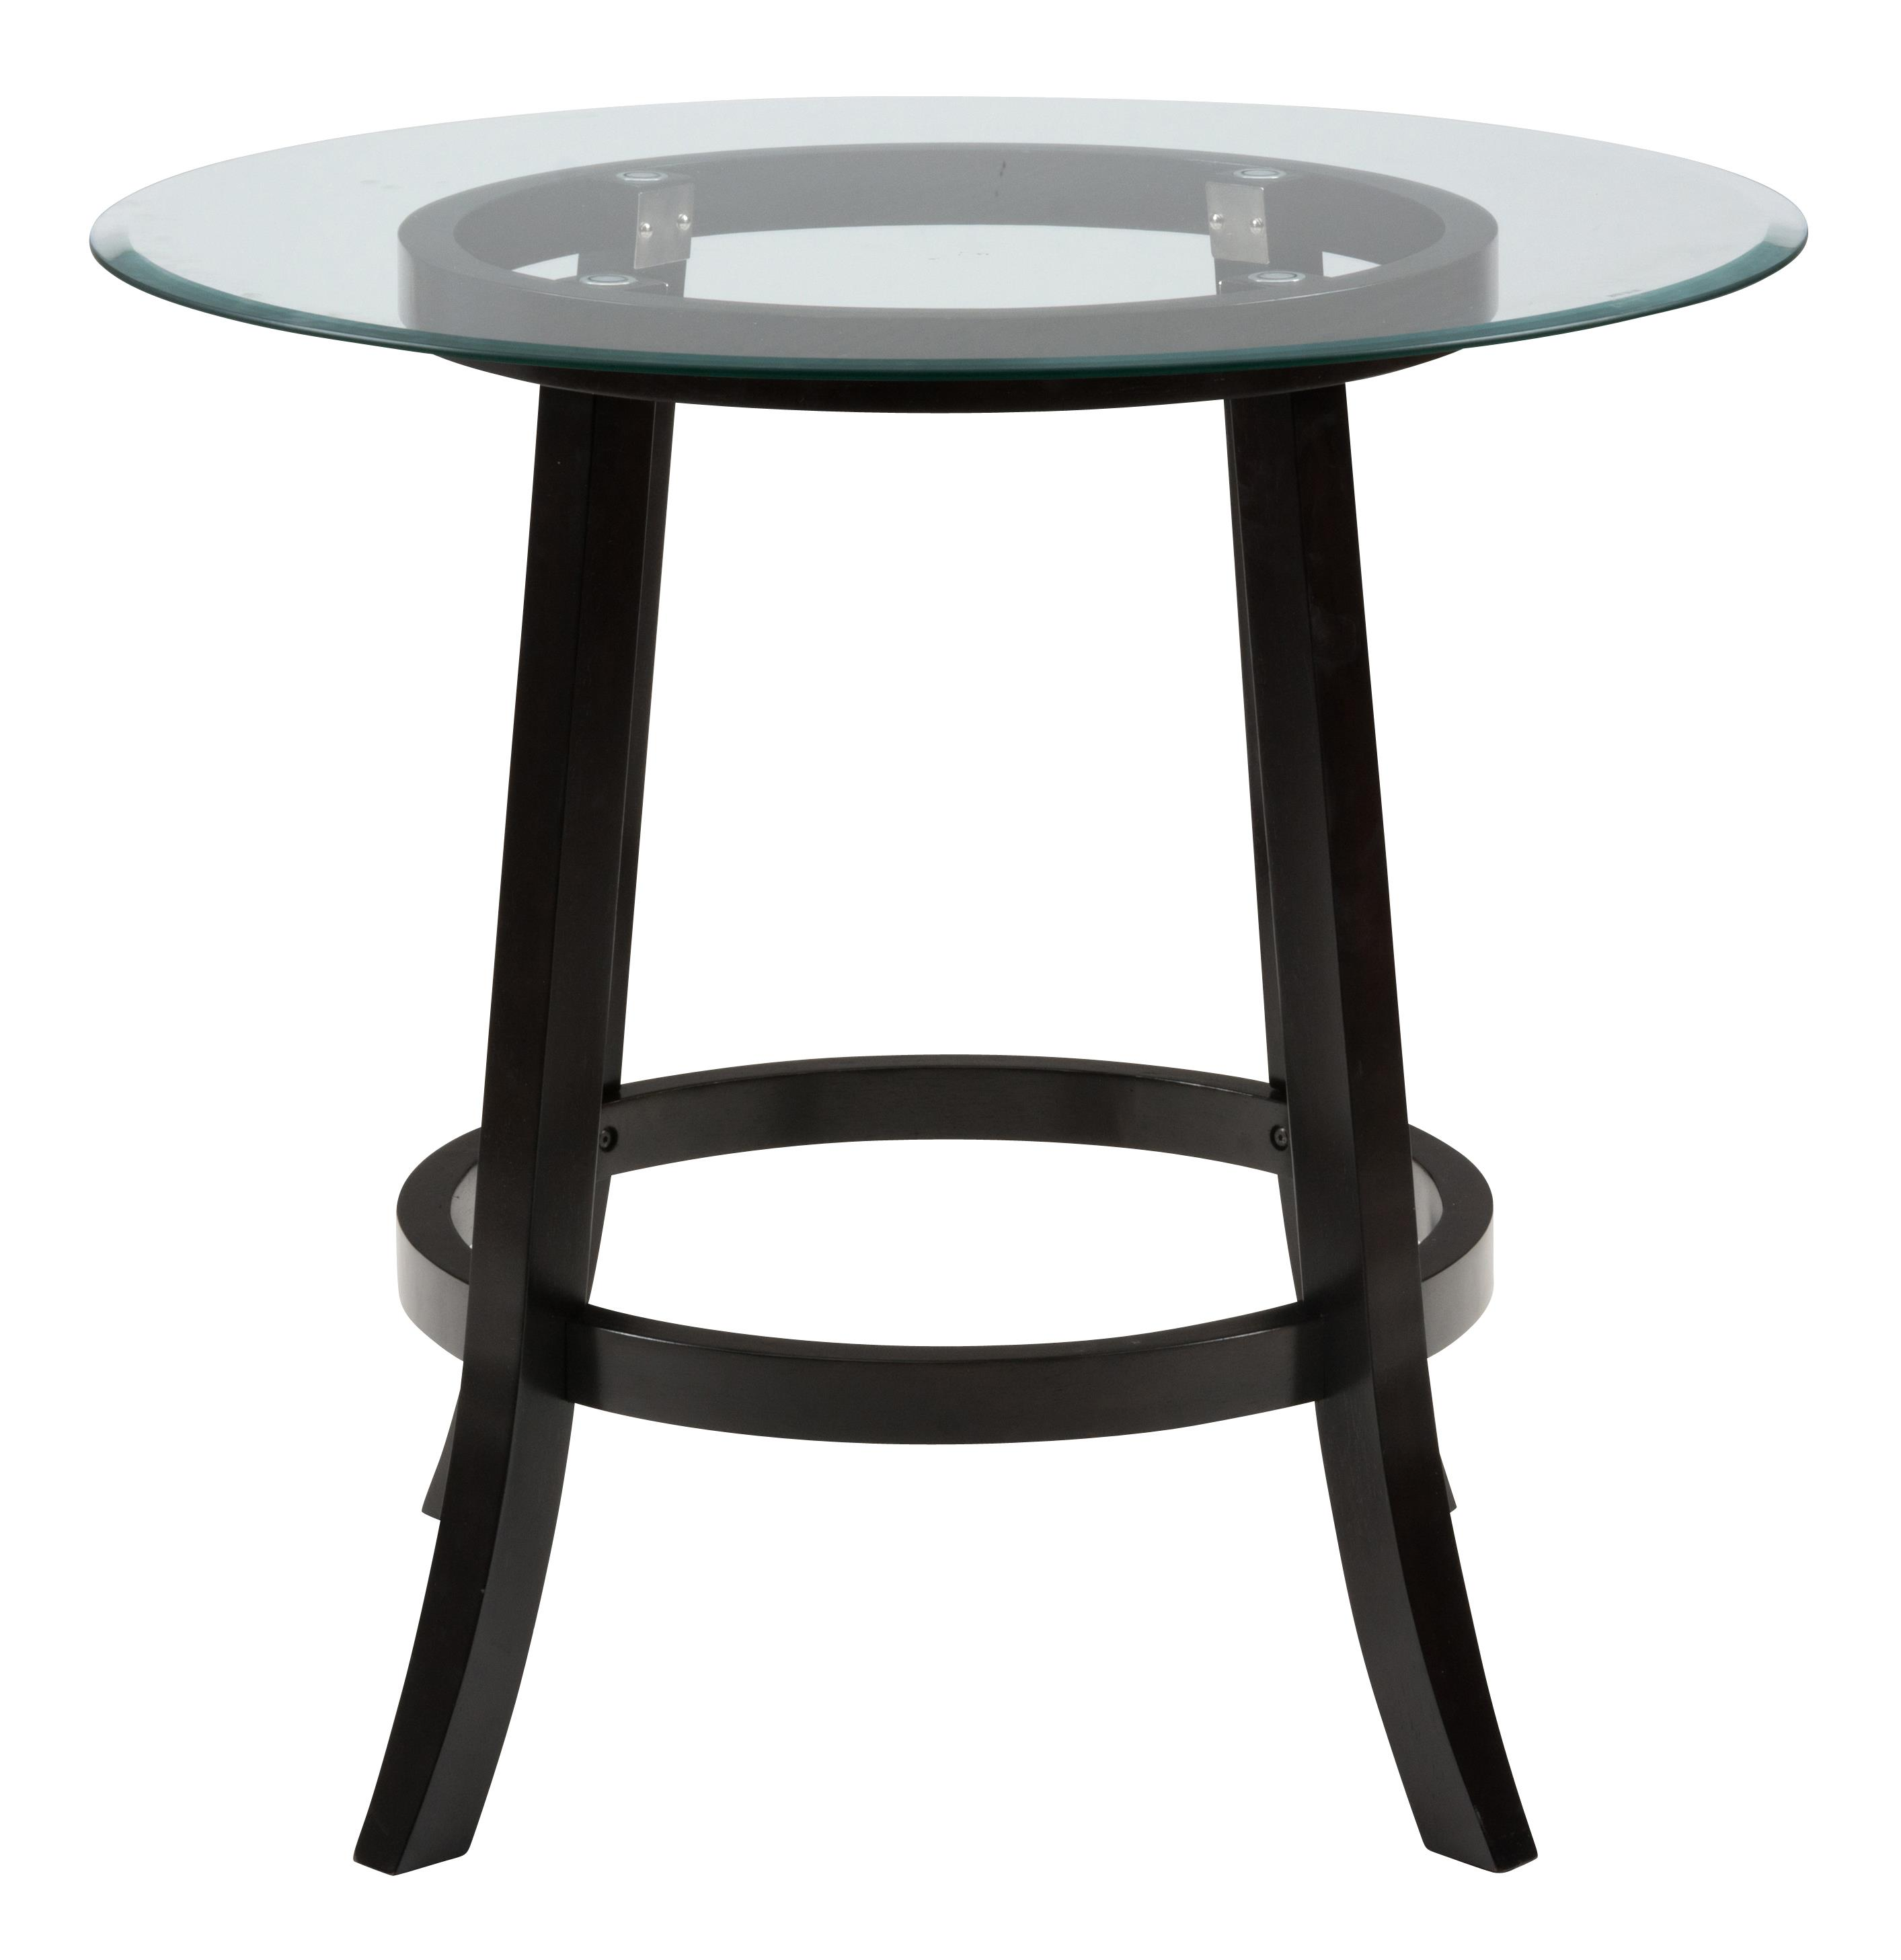 42 round pub table with glass top by jofran wolf and gardine